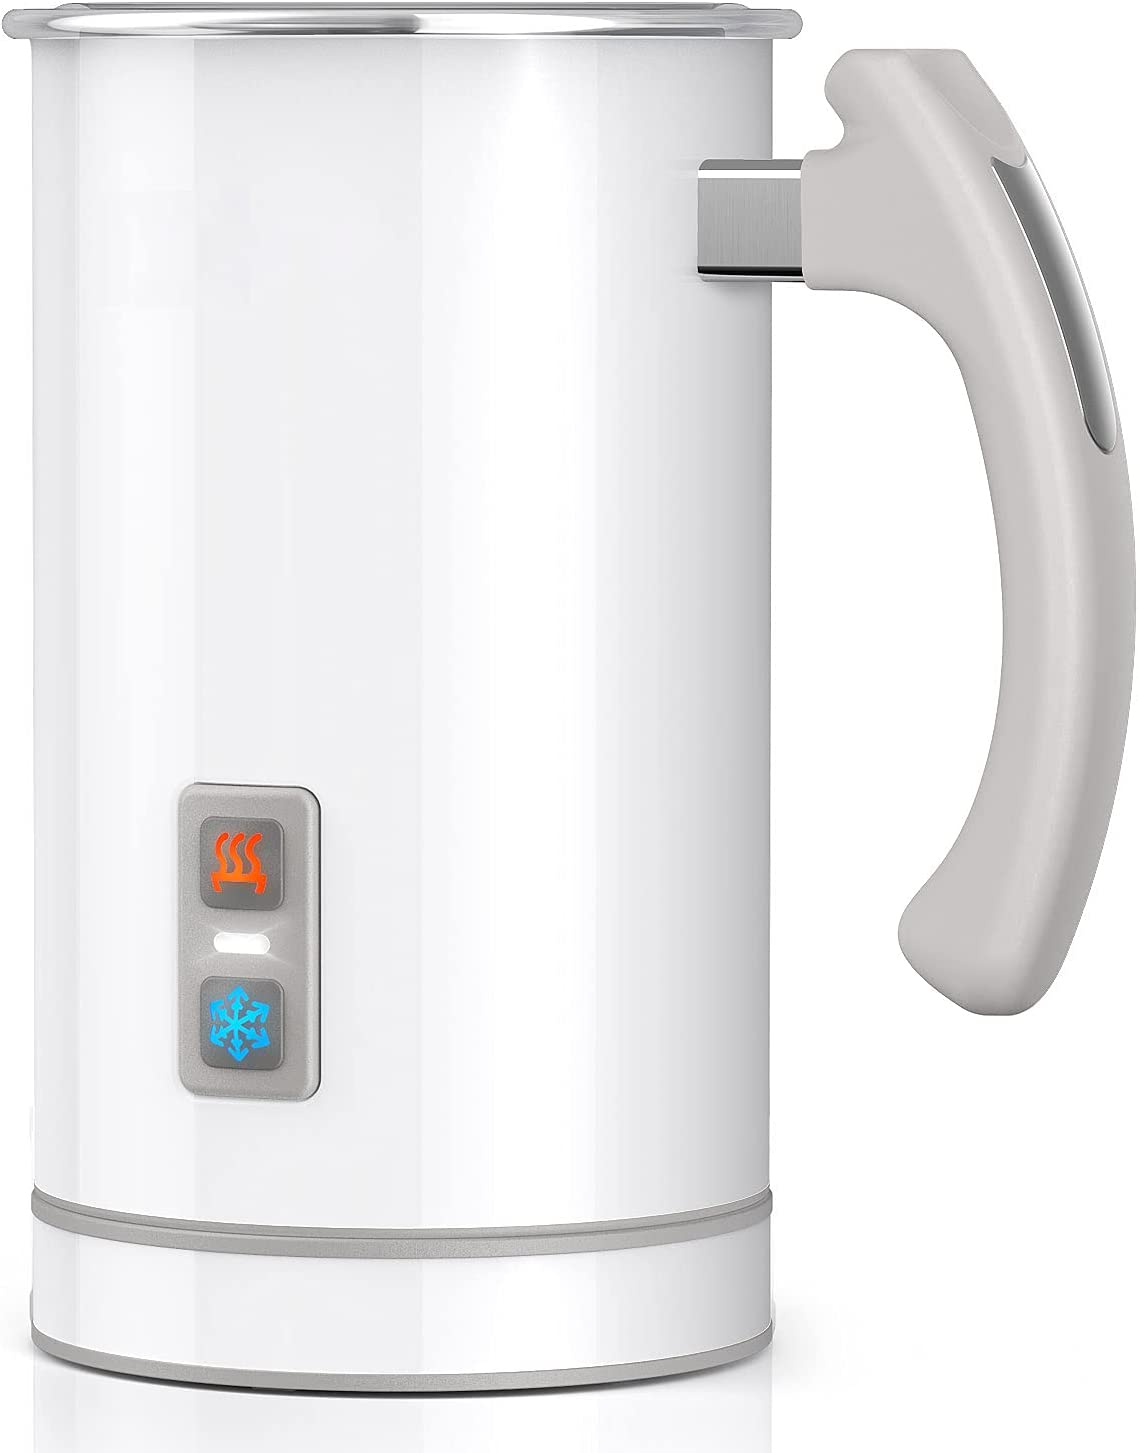 Vprool Stainless Electric Milk Frother